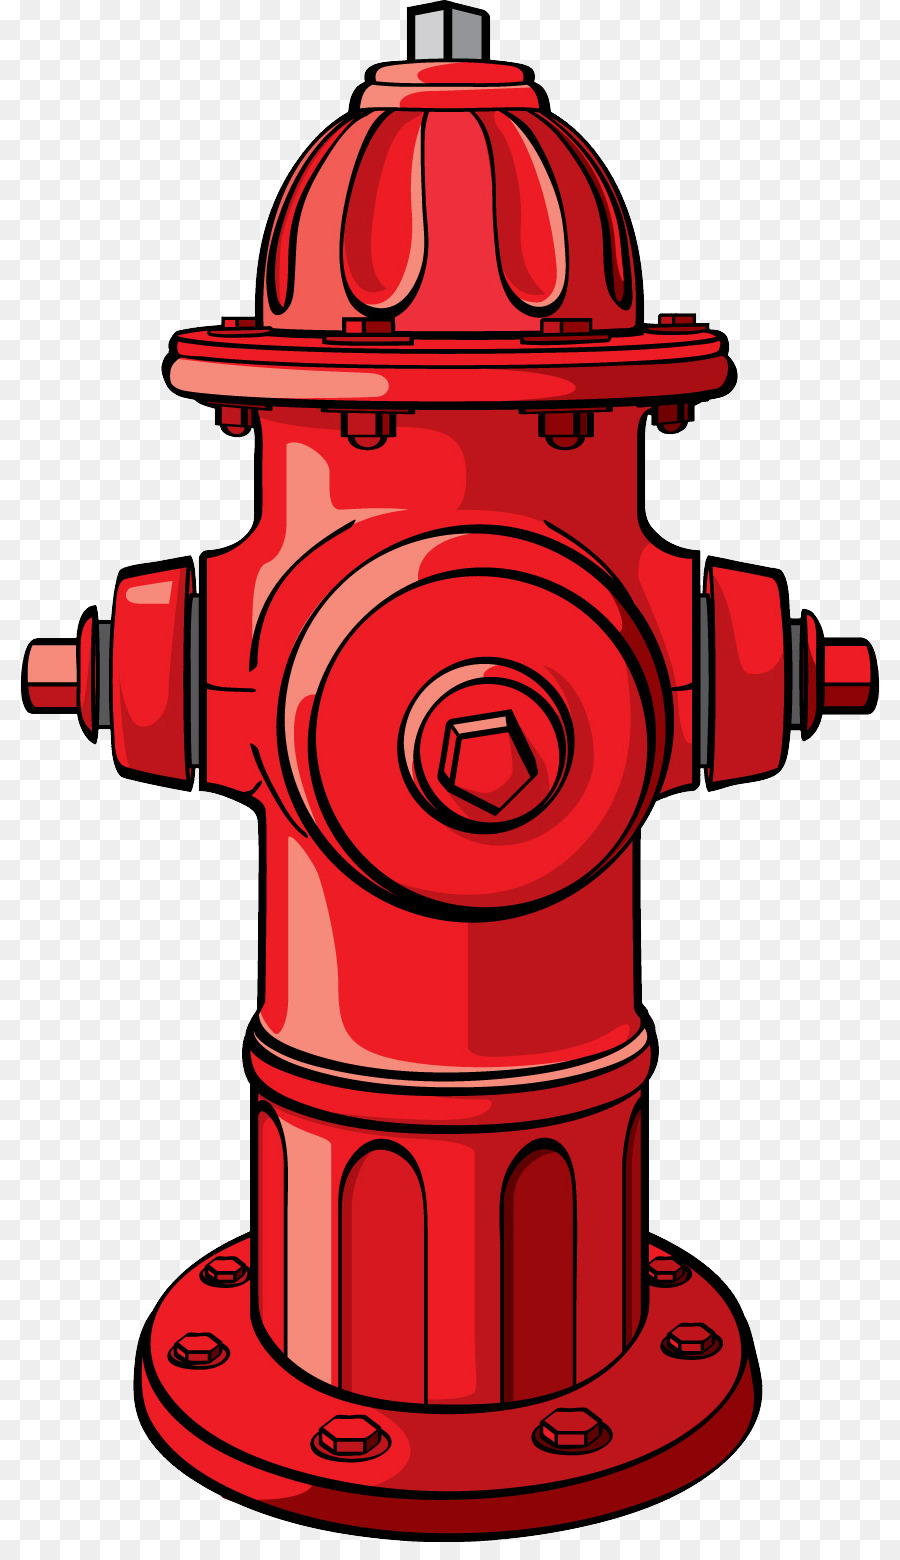 image freeuse Hydrant clipart. Firefighter fire transparent clip.